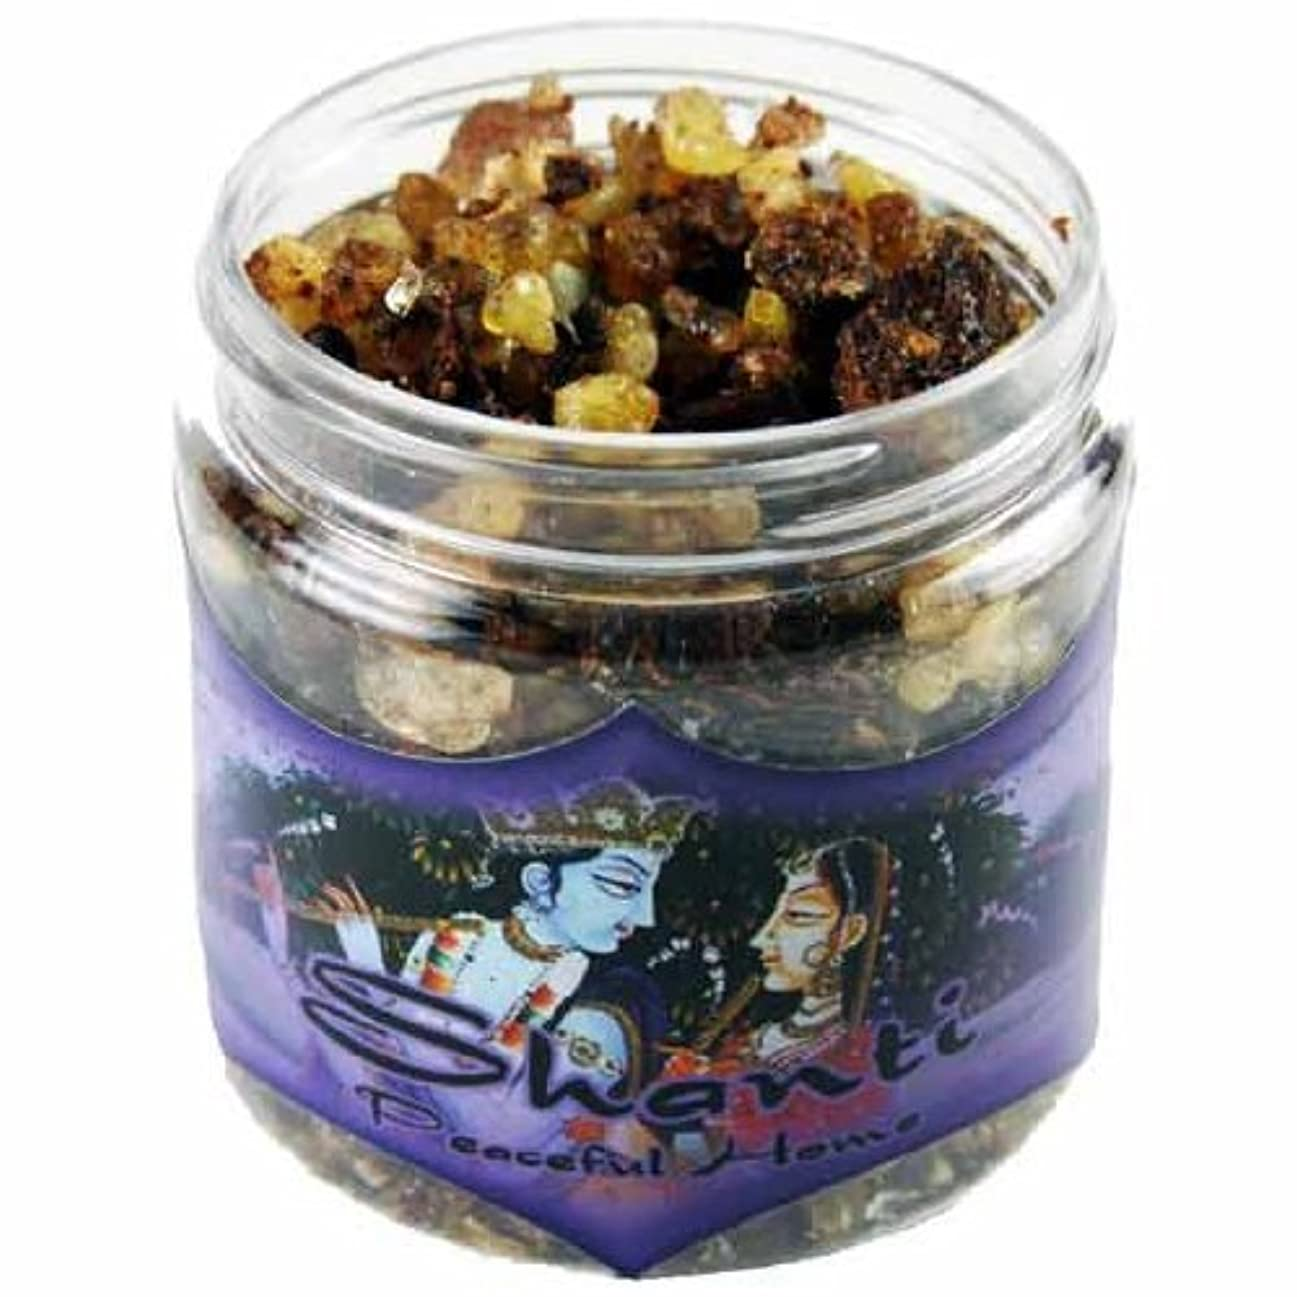 折クラック汚物Resin Incense Shanti - Peaceful Home - 2.4oz jar [並行輸入品]